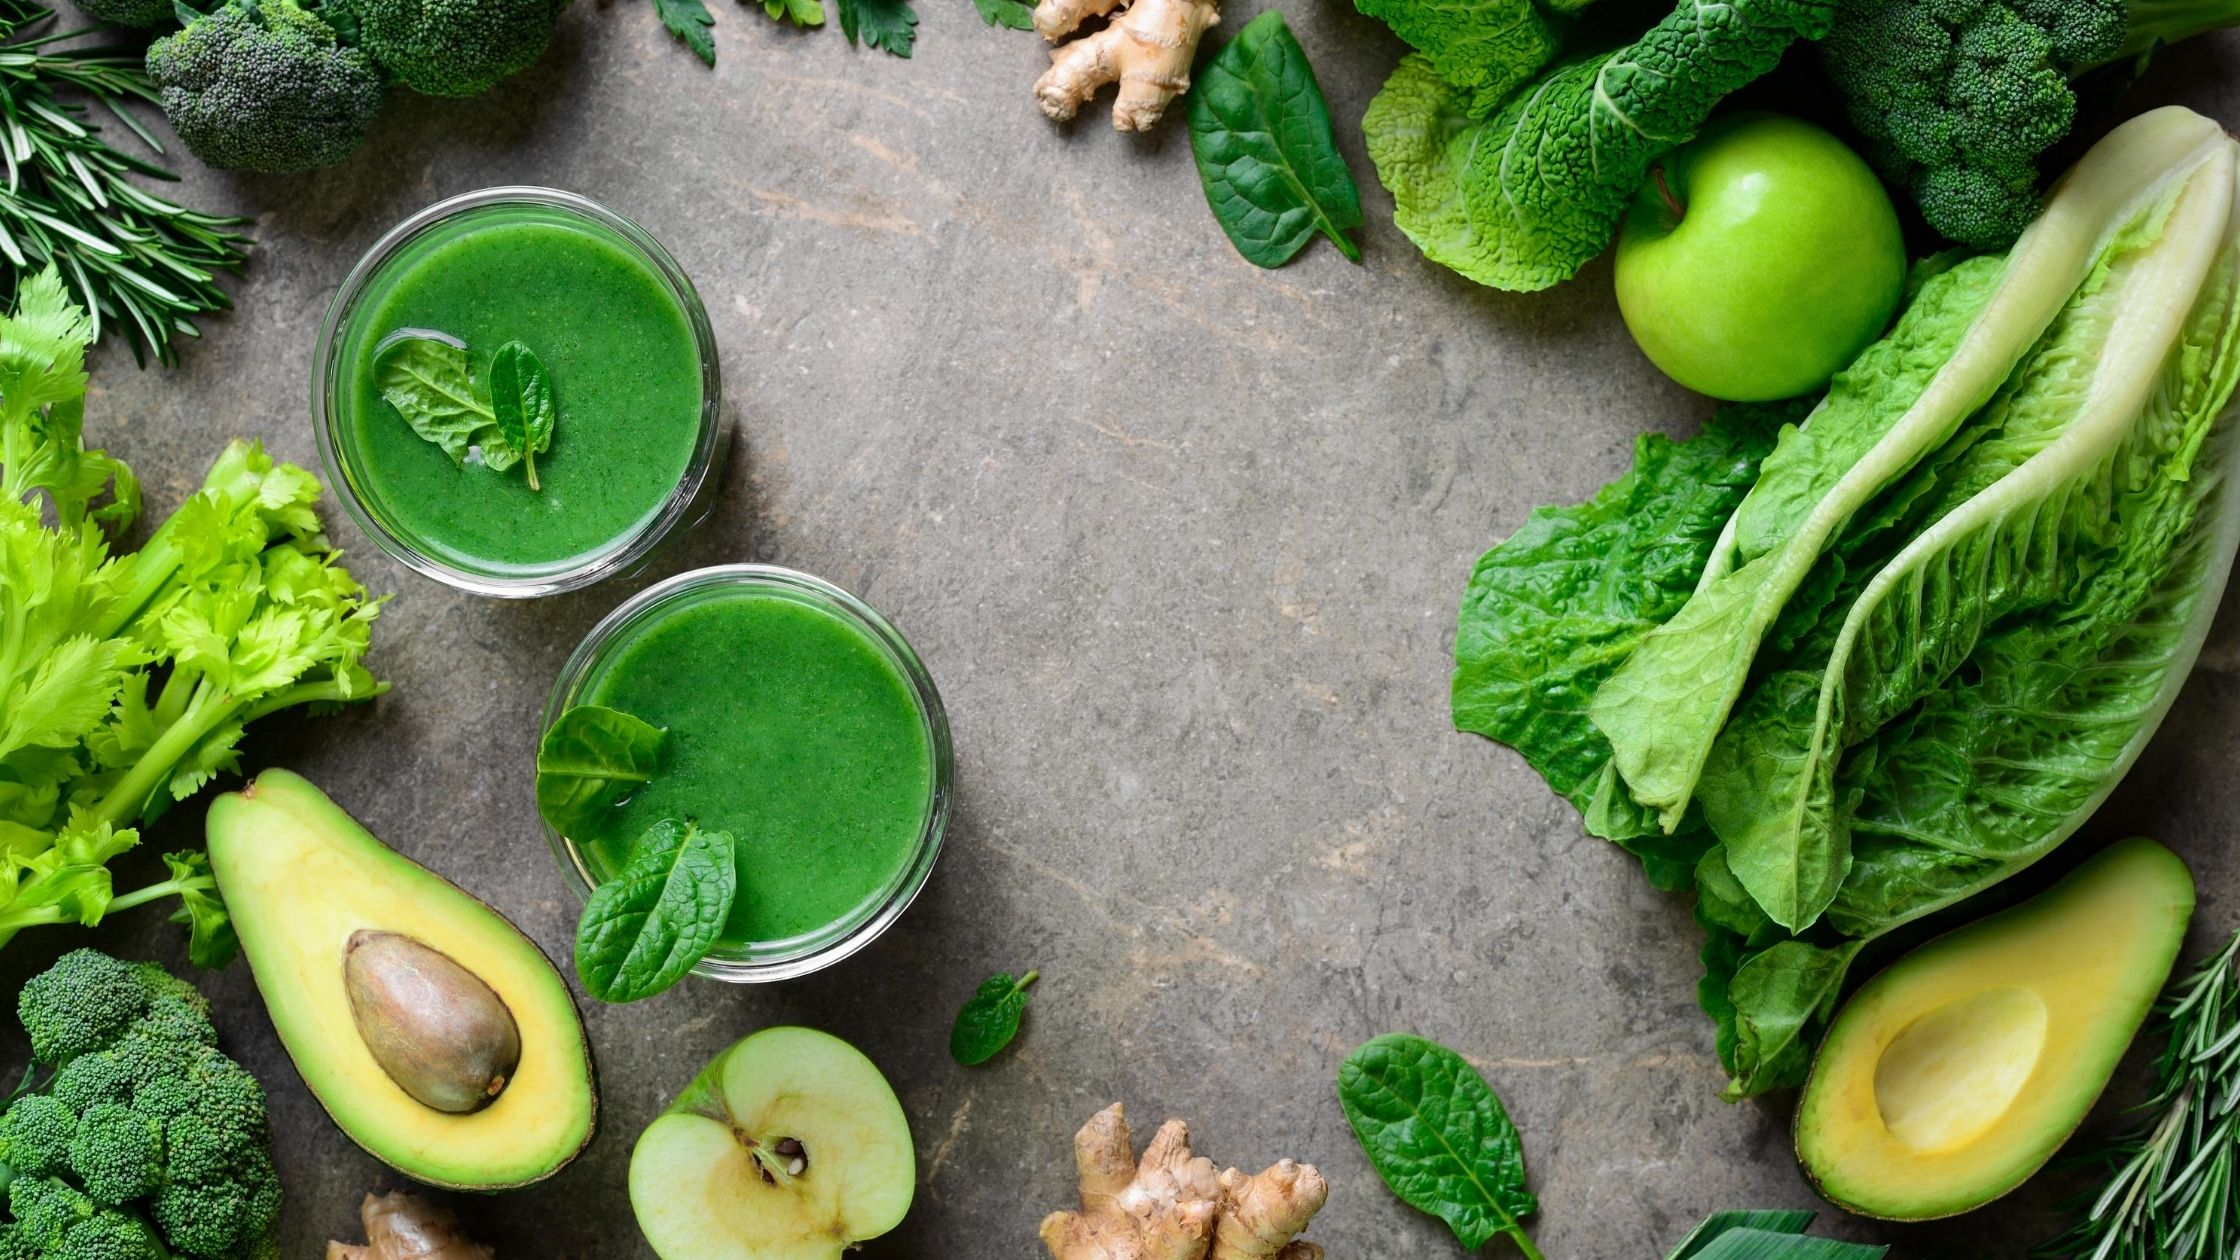 What is a detox cleanse? 8 Pros and cons